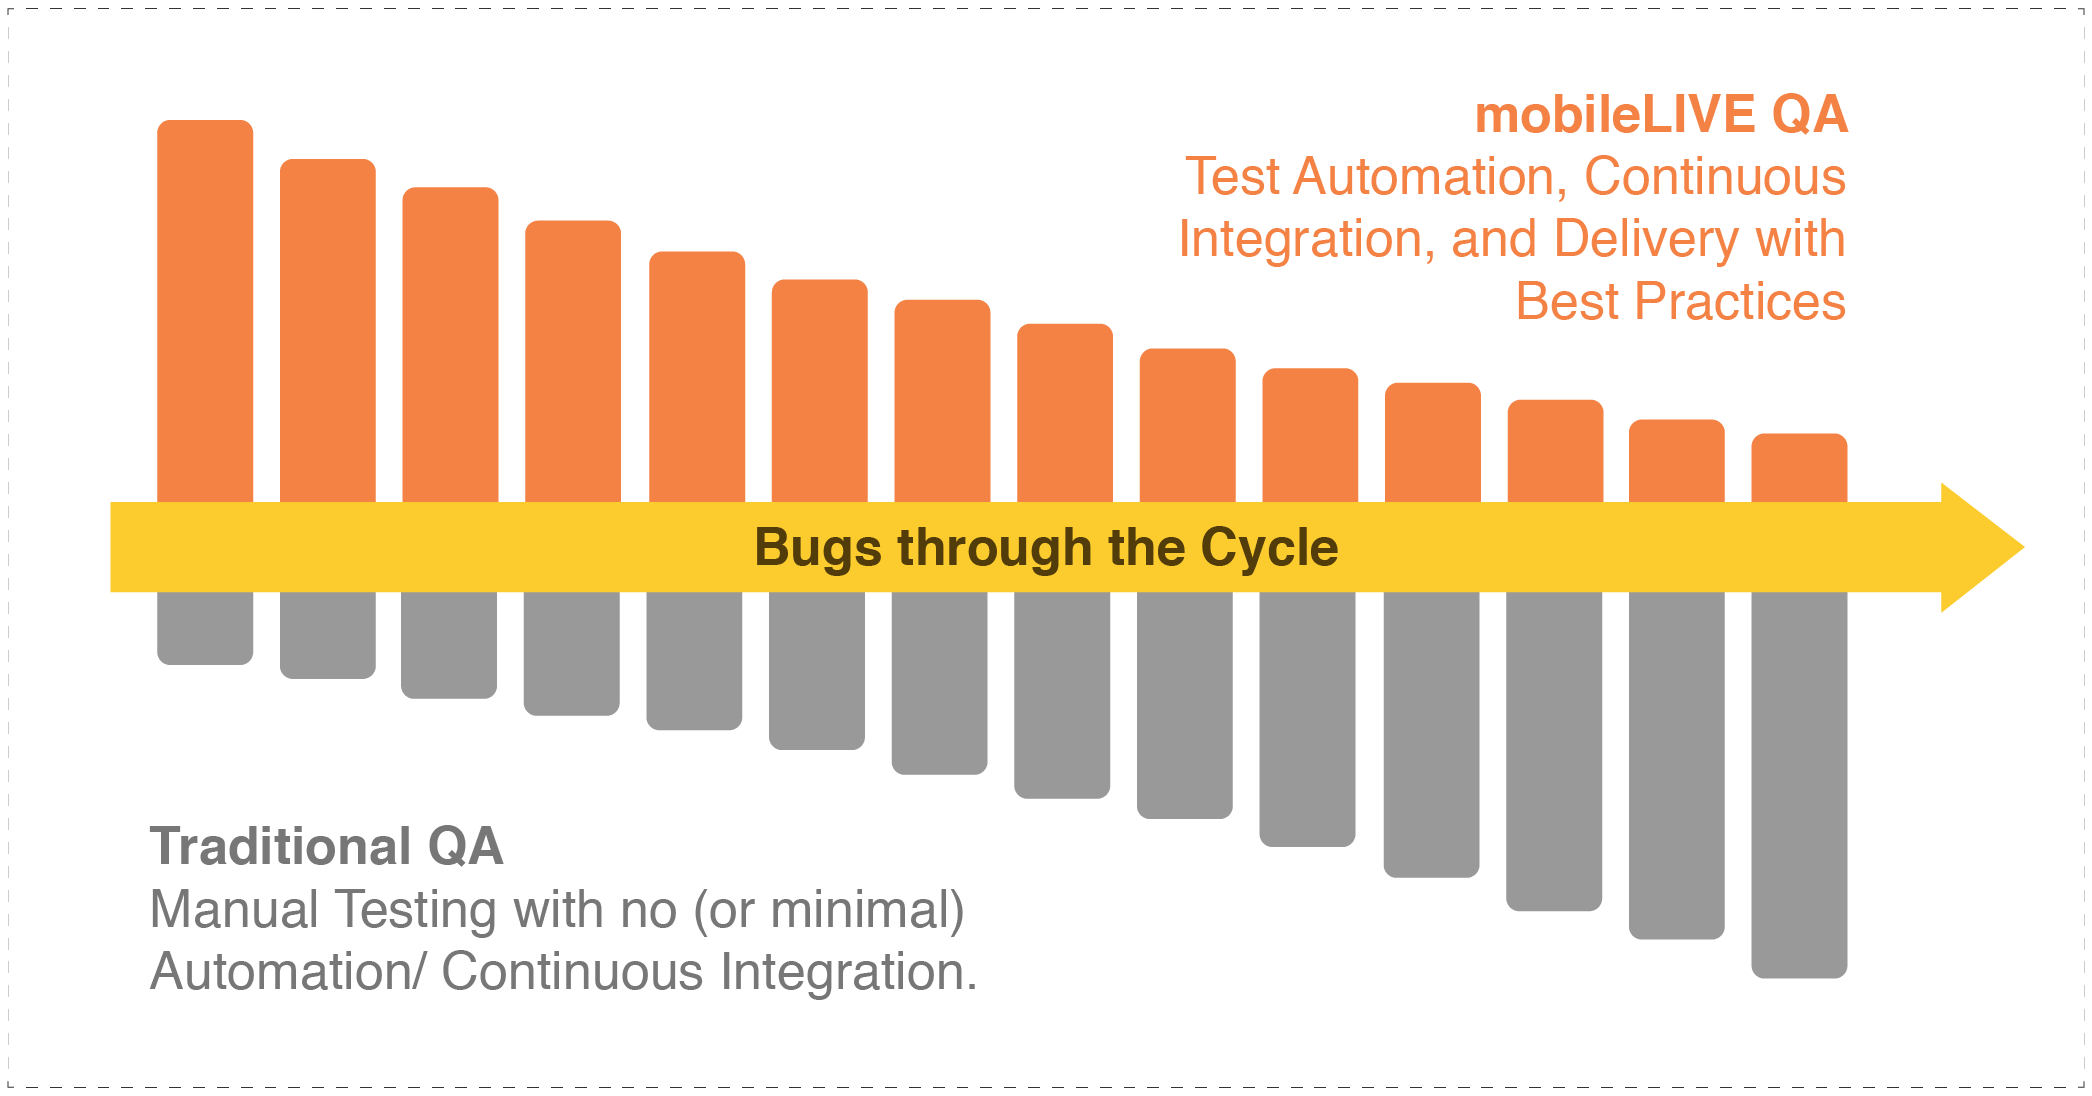 traditional QA has manual testing lots of bugs. mobileLIVE QA has test automation, continuous integration, not many bugs